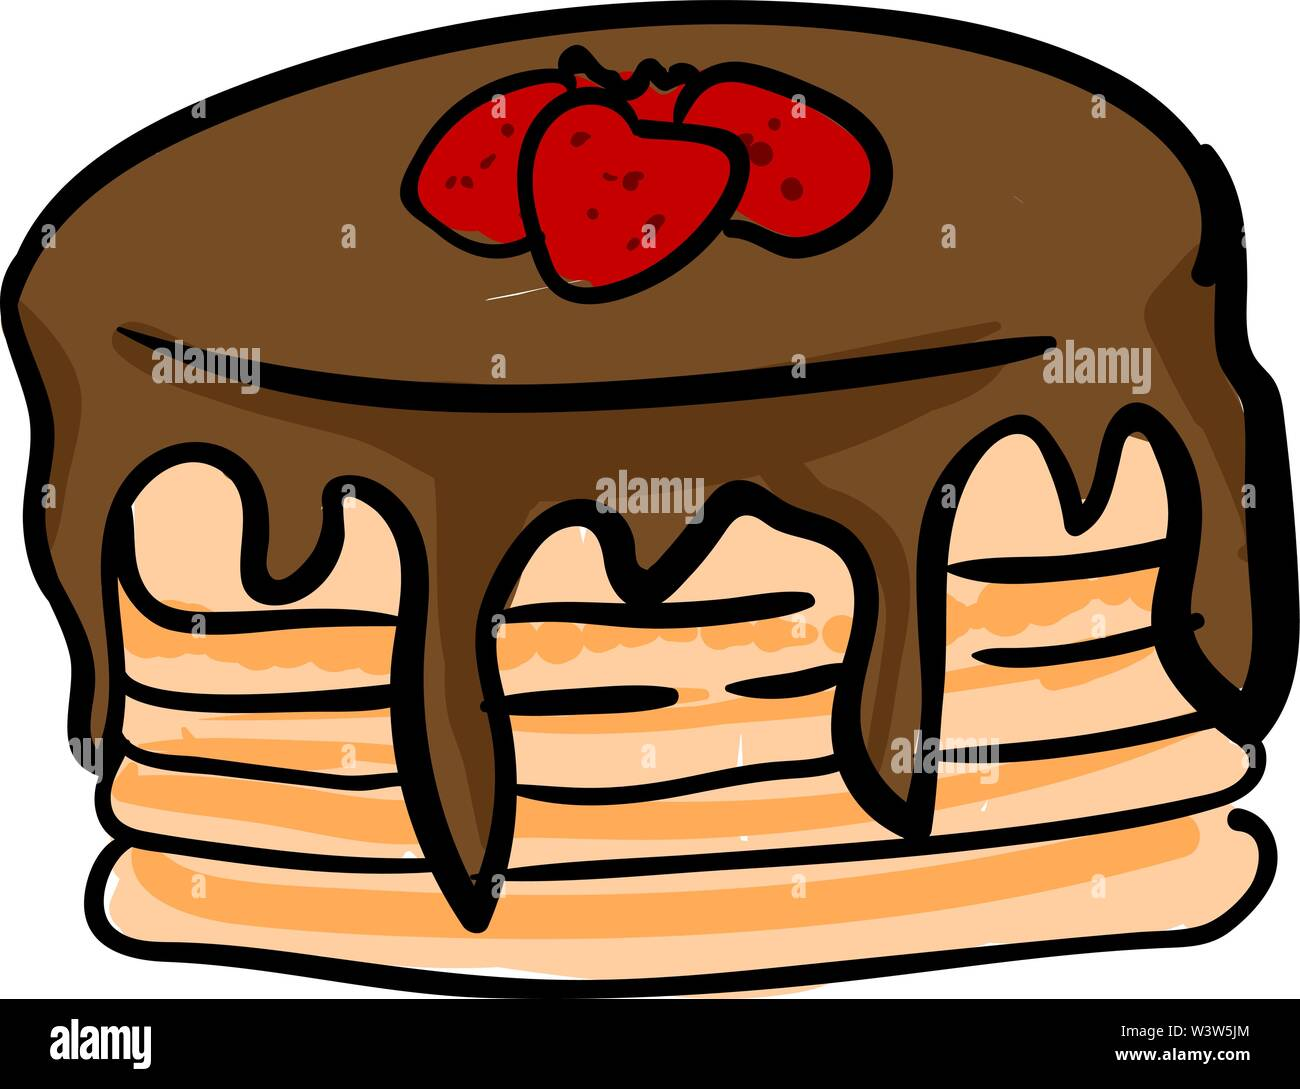 Delicious pancake, illustration, vector on white background. - Stock Image